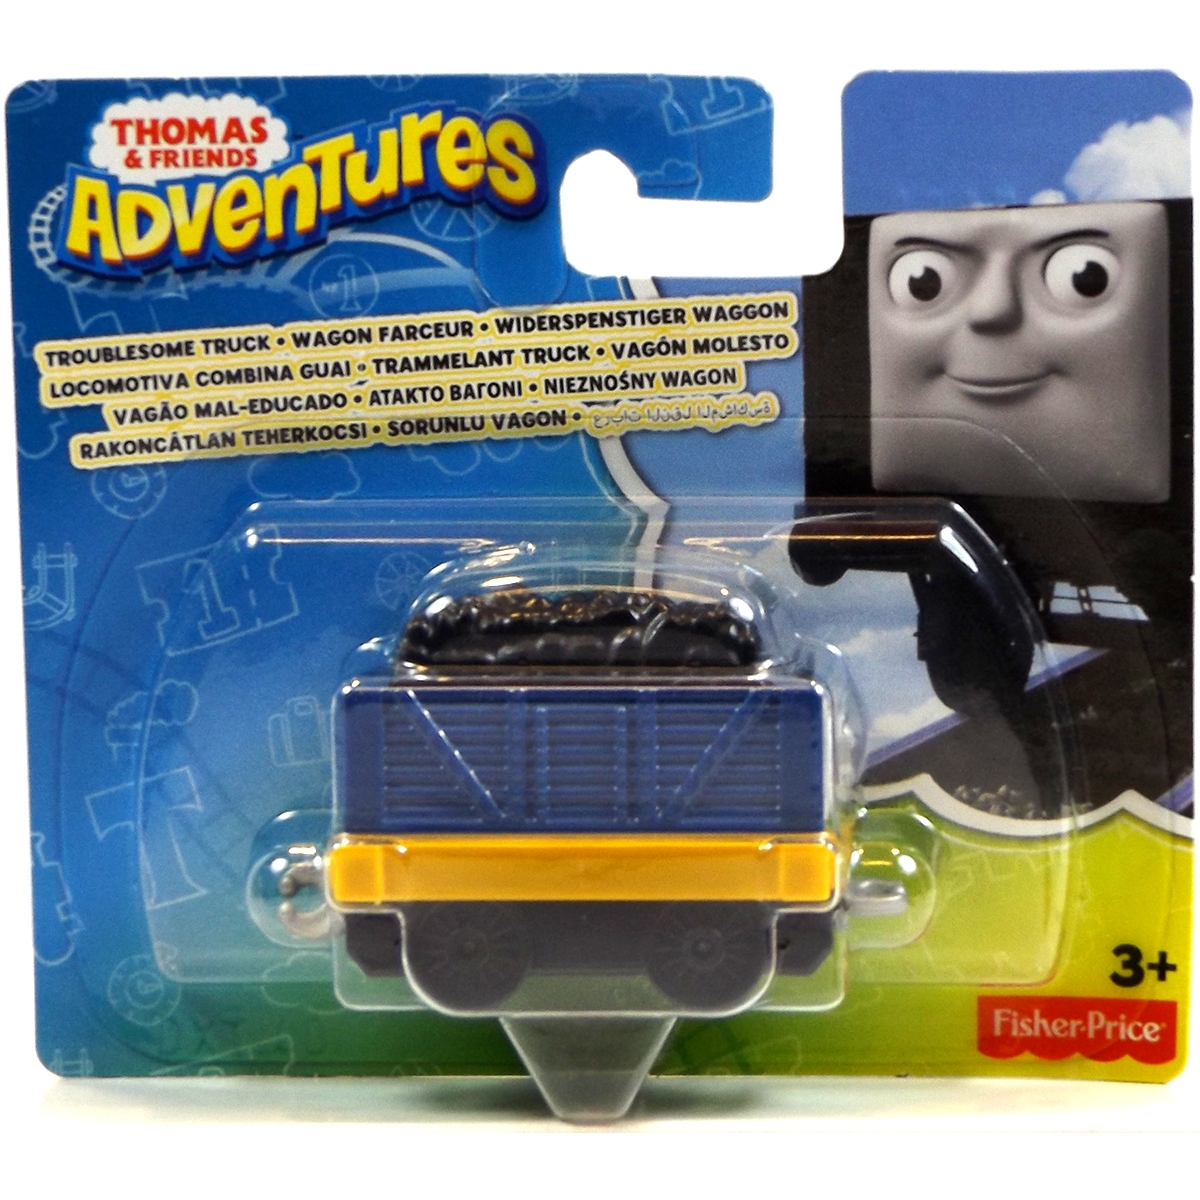 Toys And Adventures : Thomas friends adventures troublesome truck engine